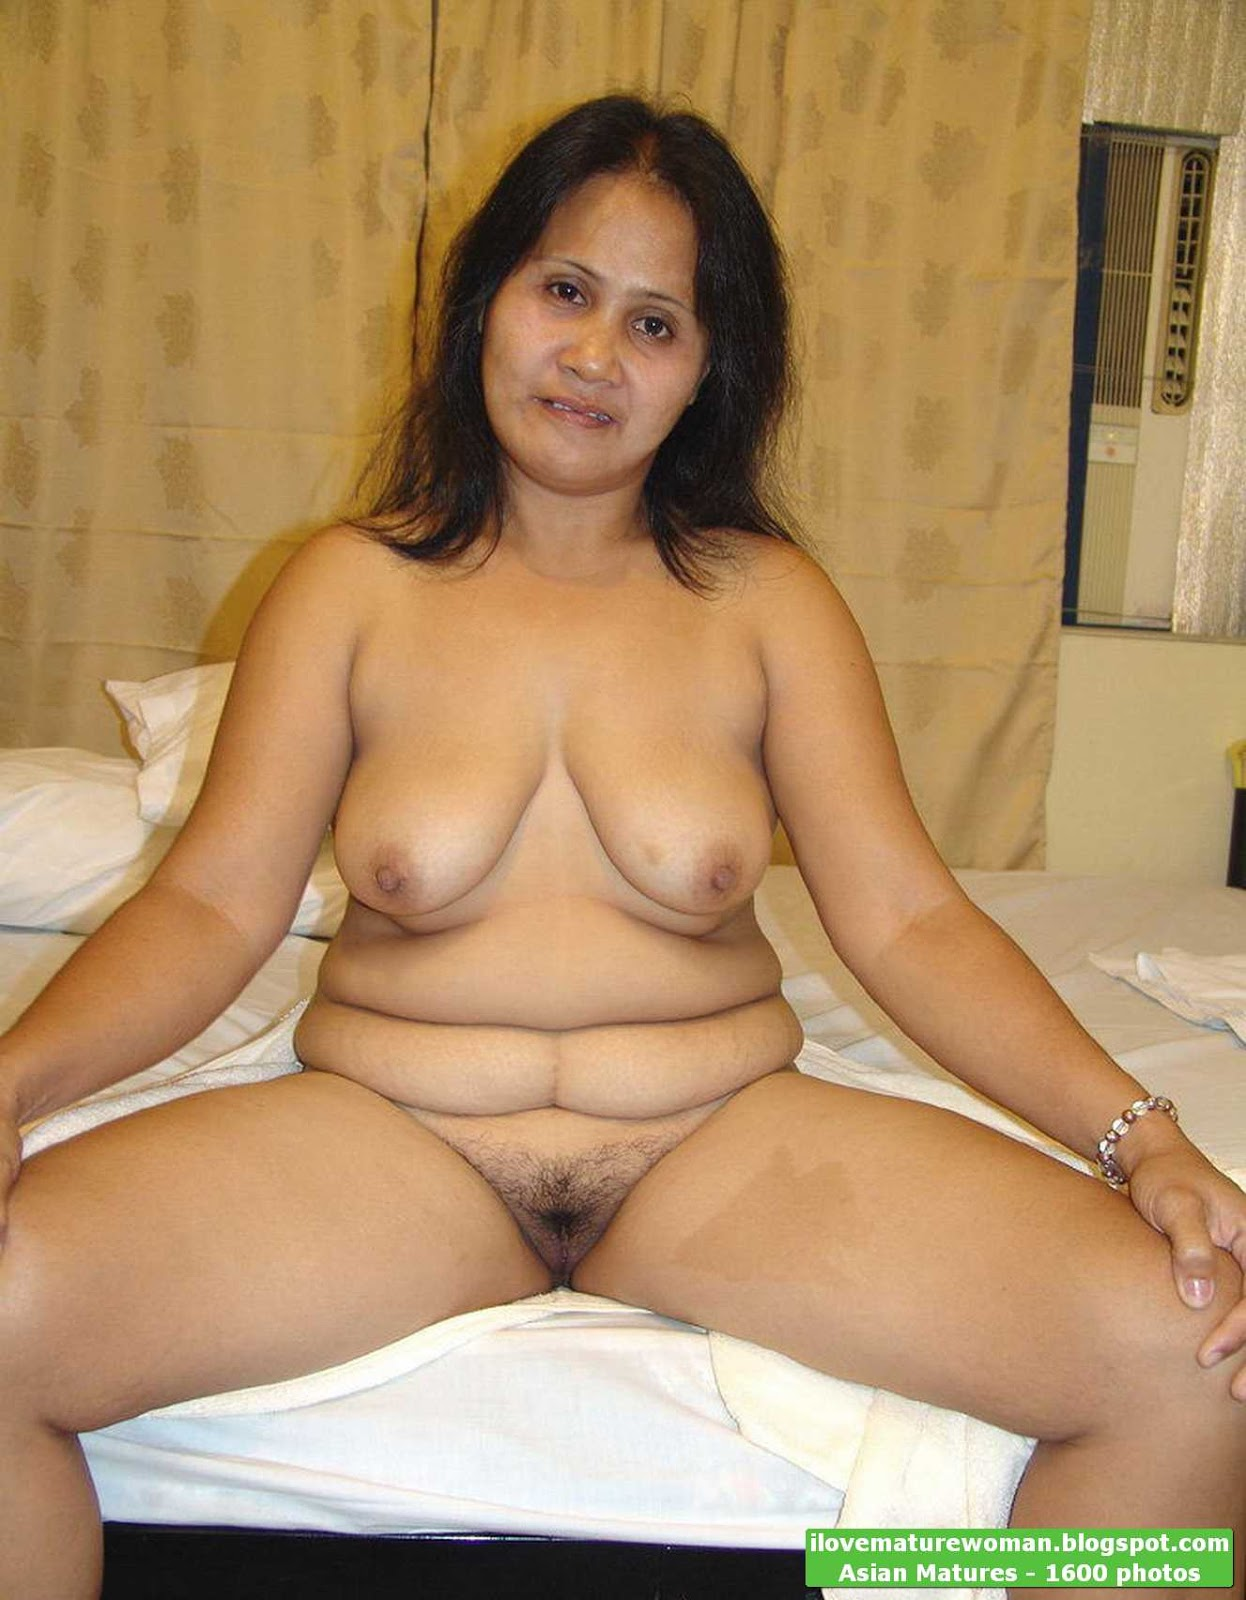 I Love Mature Woman Asian Matures - 1600 Photos-4609